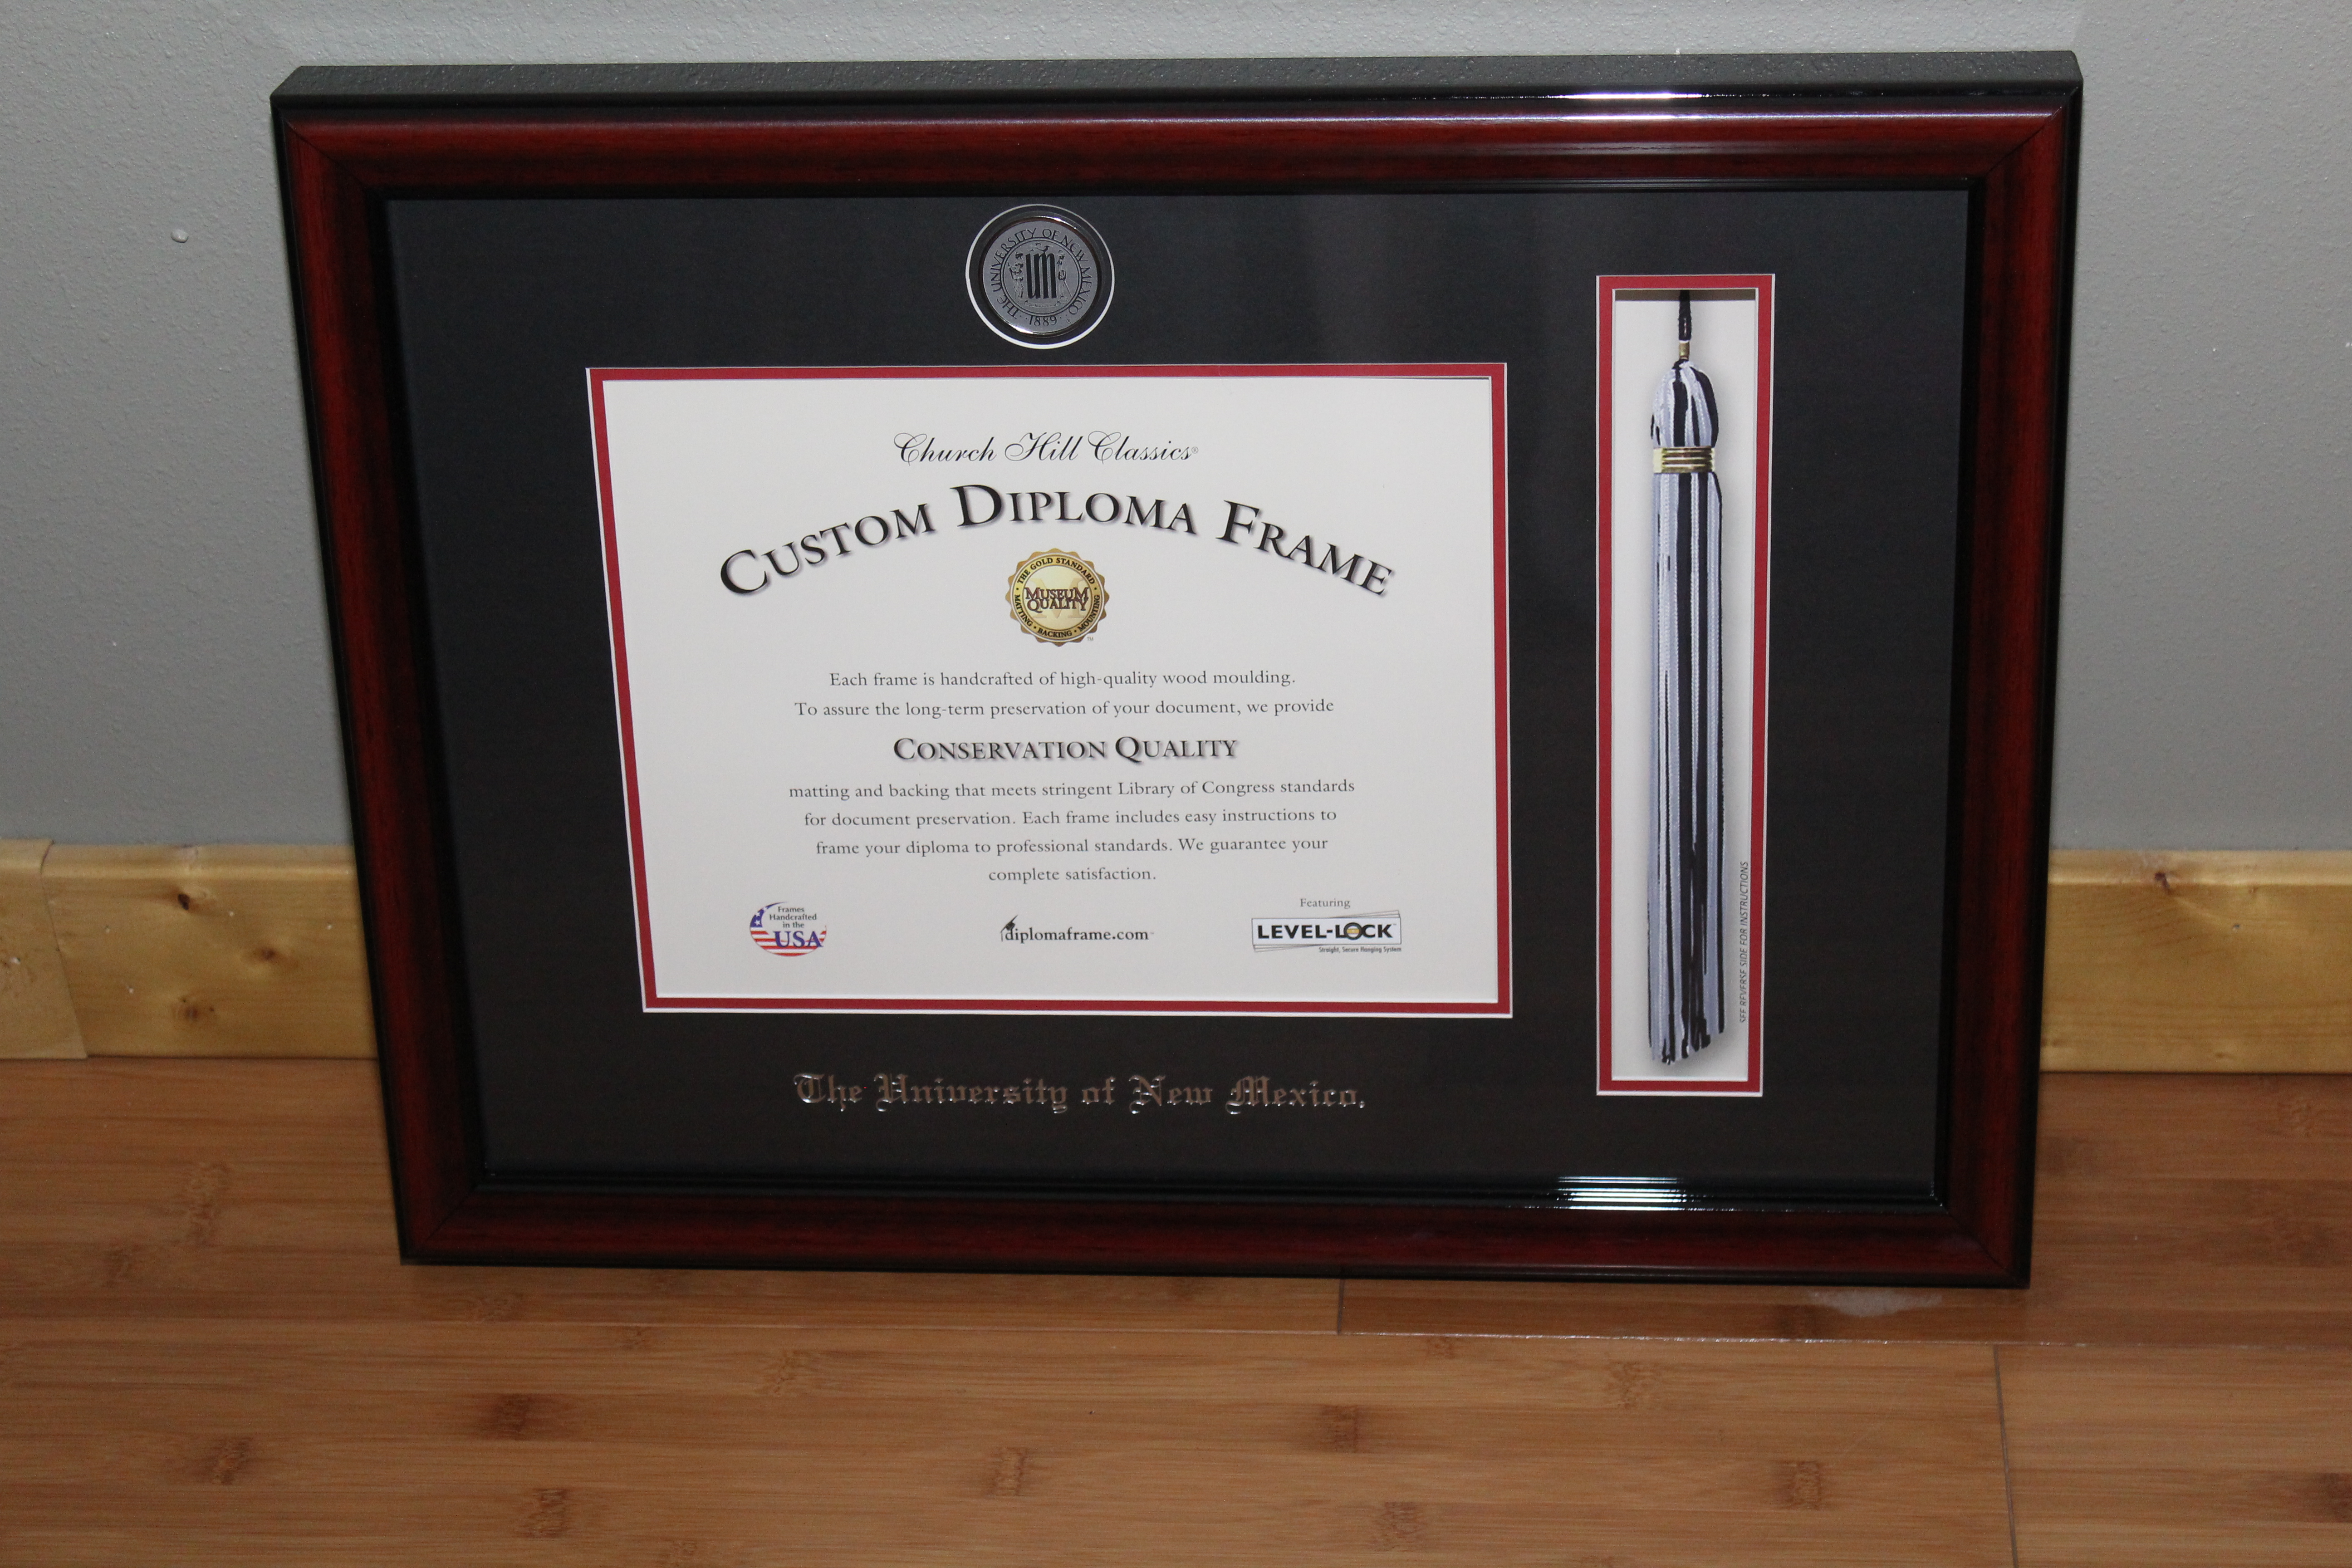 Gift ideas to celebrate graduation custom diploma frames custom diploma frames by church hill classics solutioingenieria Image collections